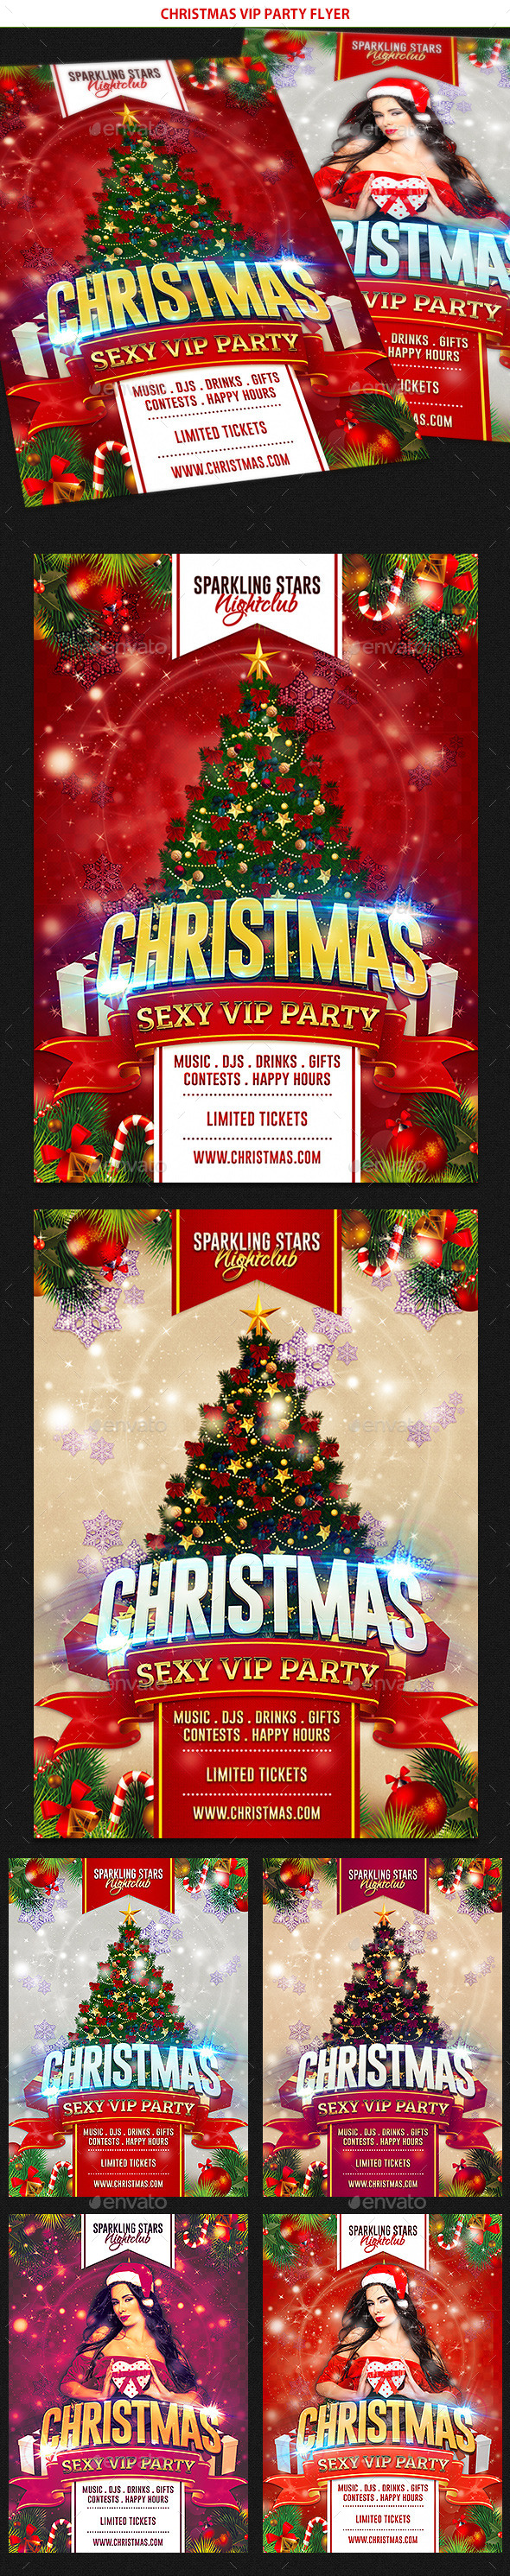 Christmas VIP Party Flyer